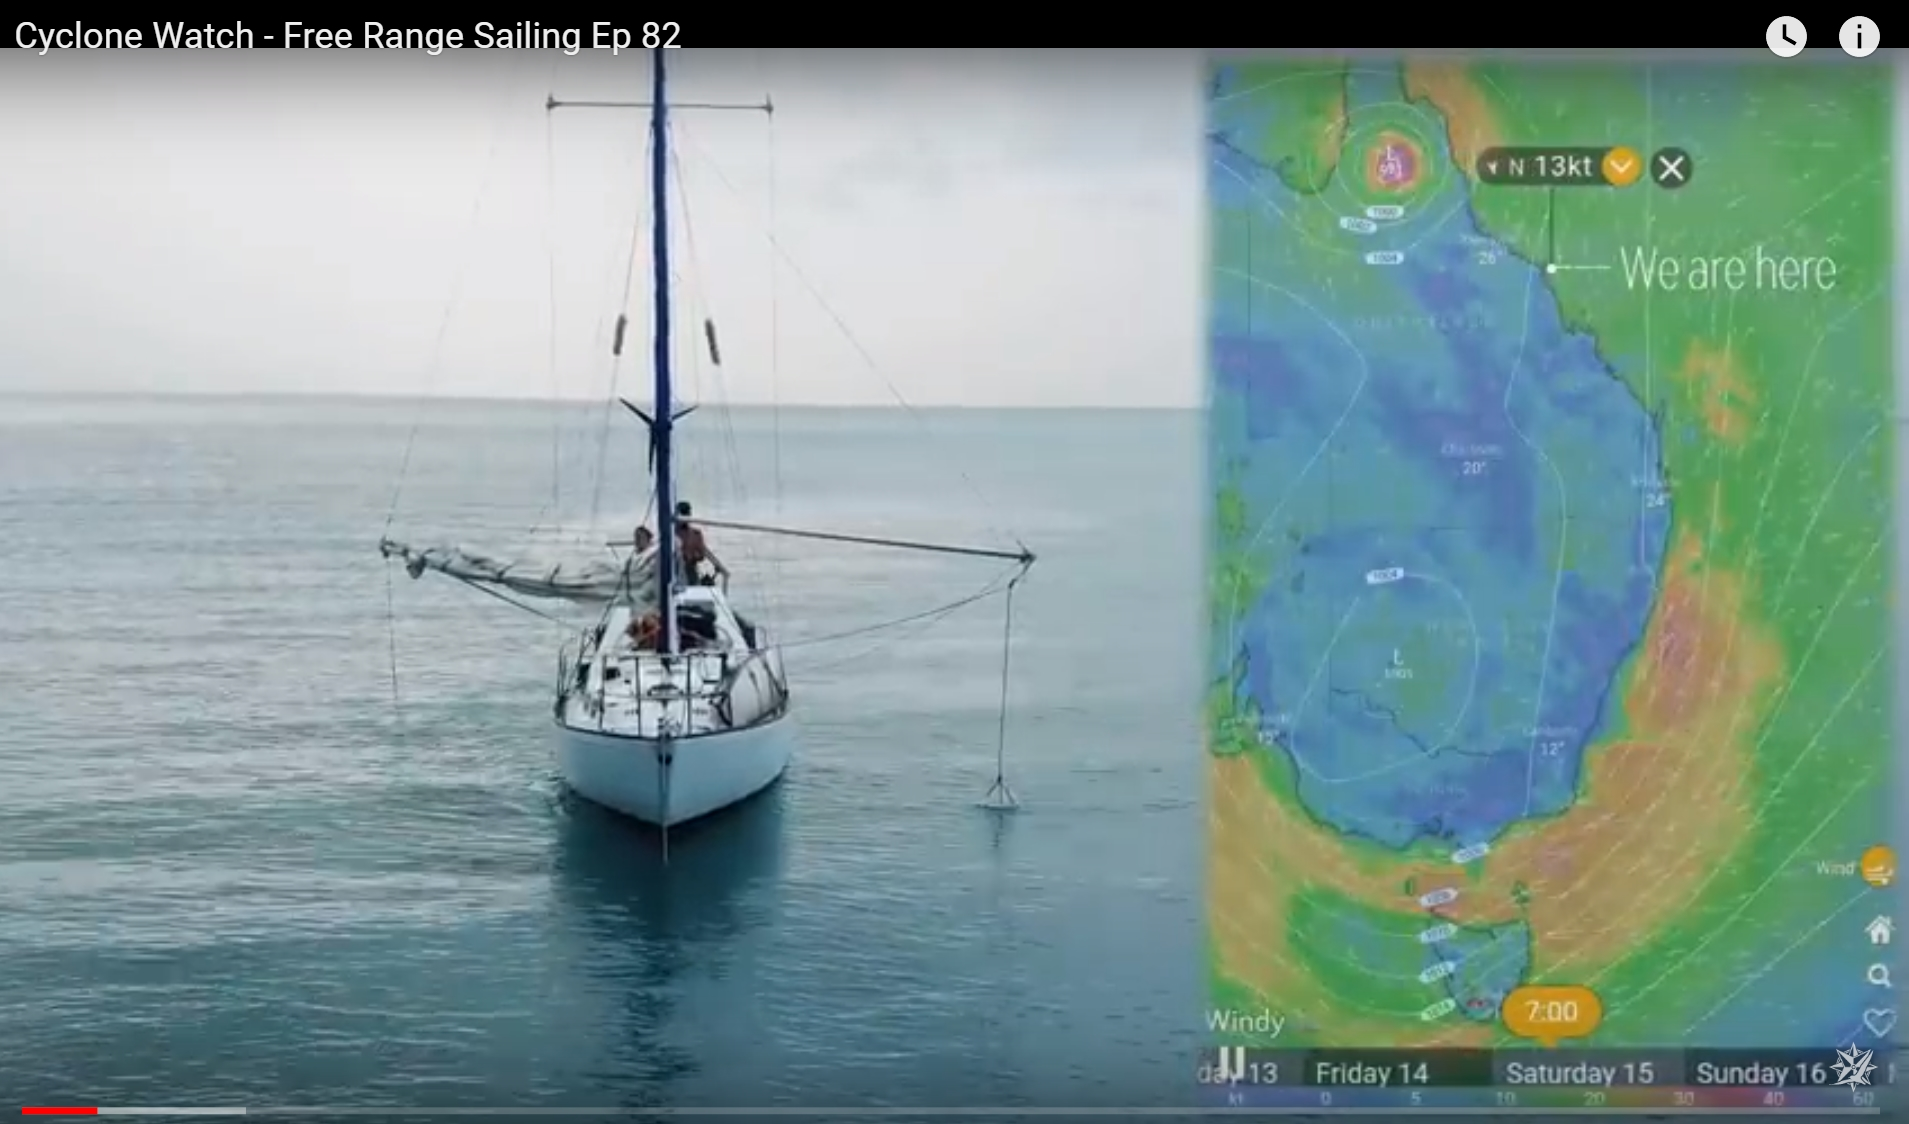 2019-05-25 09.42.27 - Cyclone Watch - Free Range Sailing Ep 82 - YouTube - Google Chrome.jpg